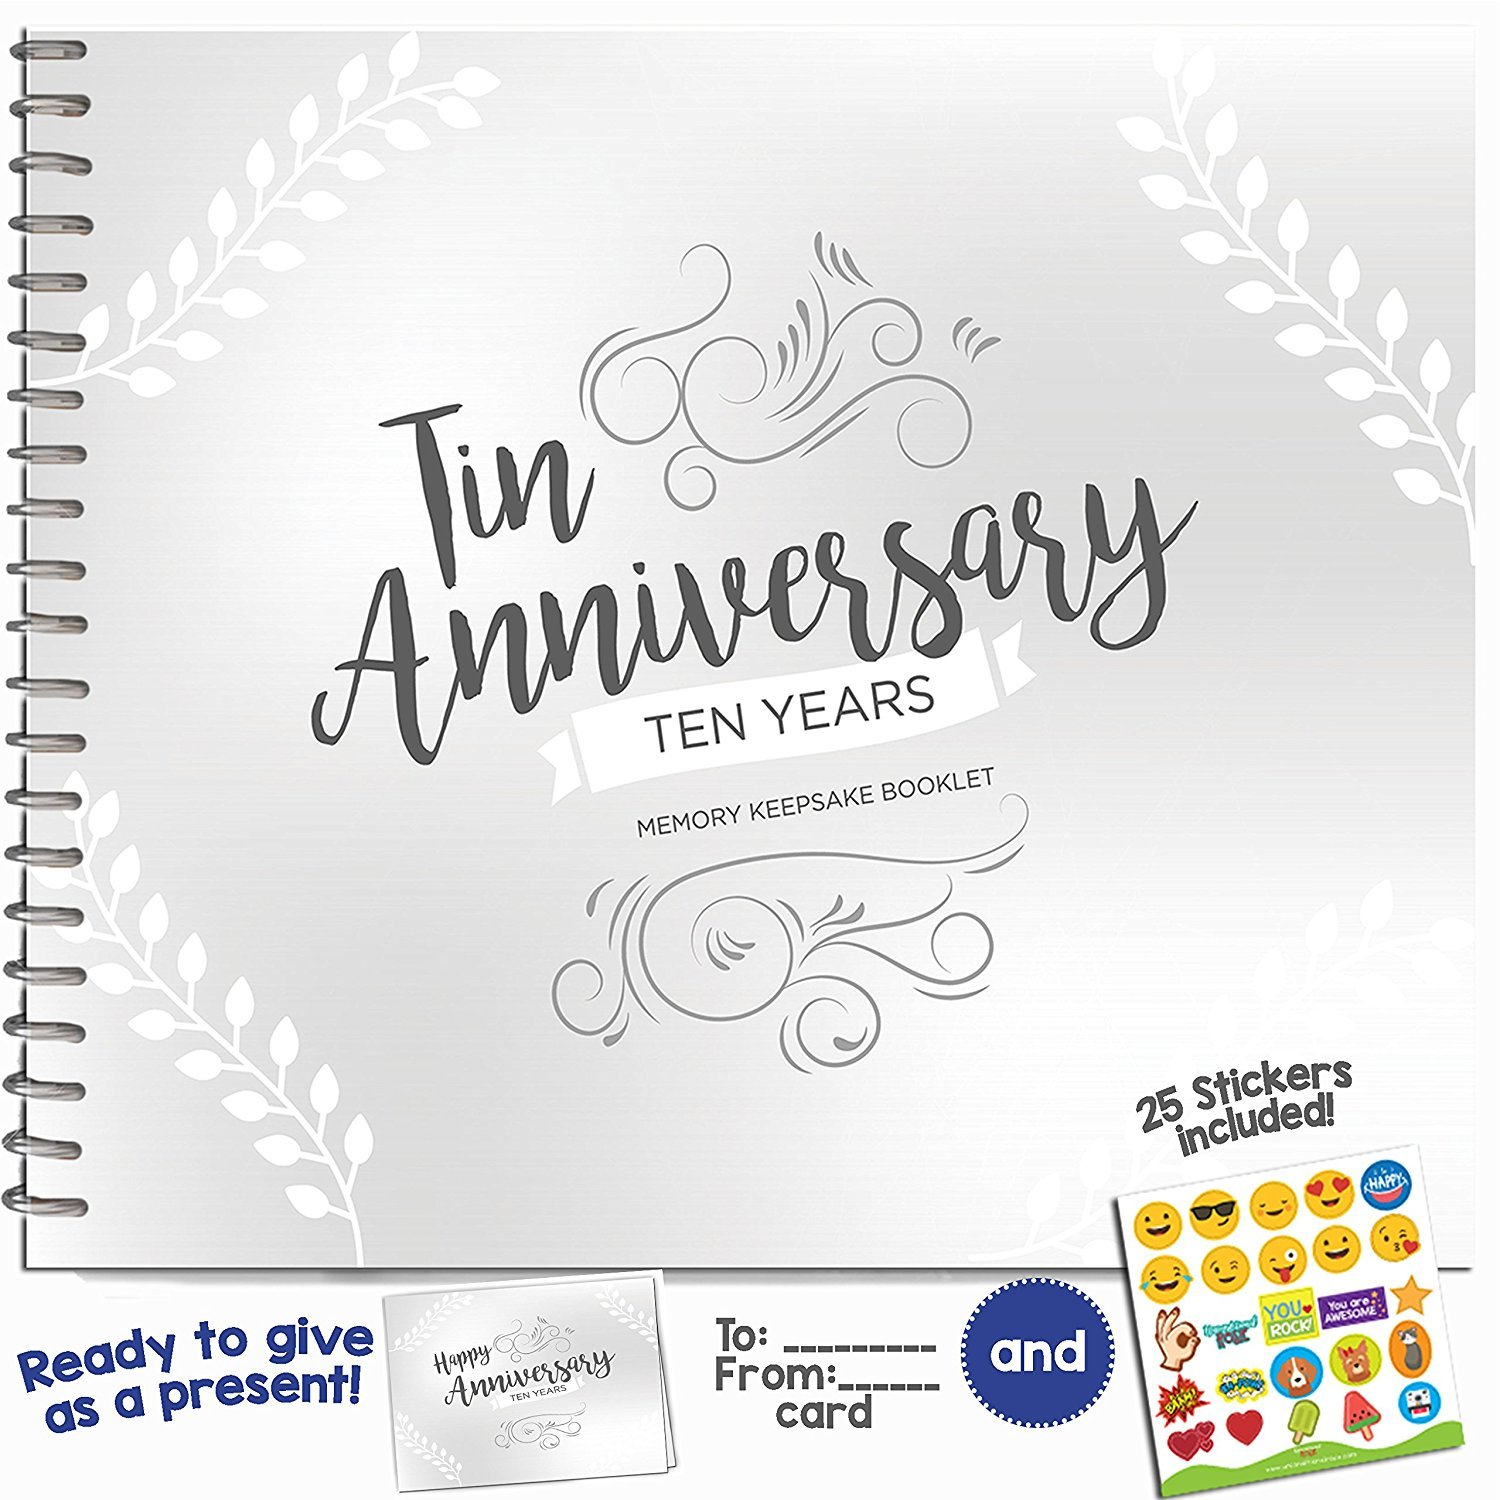 Unique 10th Wedding Anniversary Memory Book with Stickers and A Matching Card - 5-Second Memory Journal For Your Special Tin Anniversary - The Perfect Keepsake Booklet for Special Memories